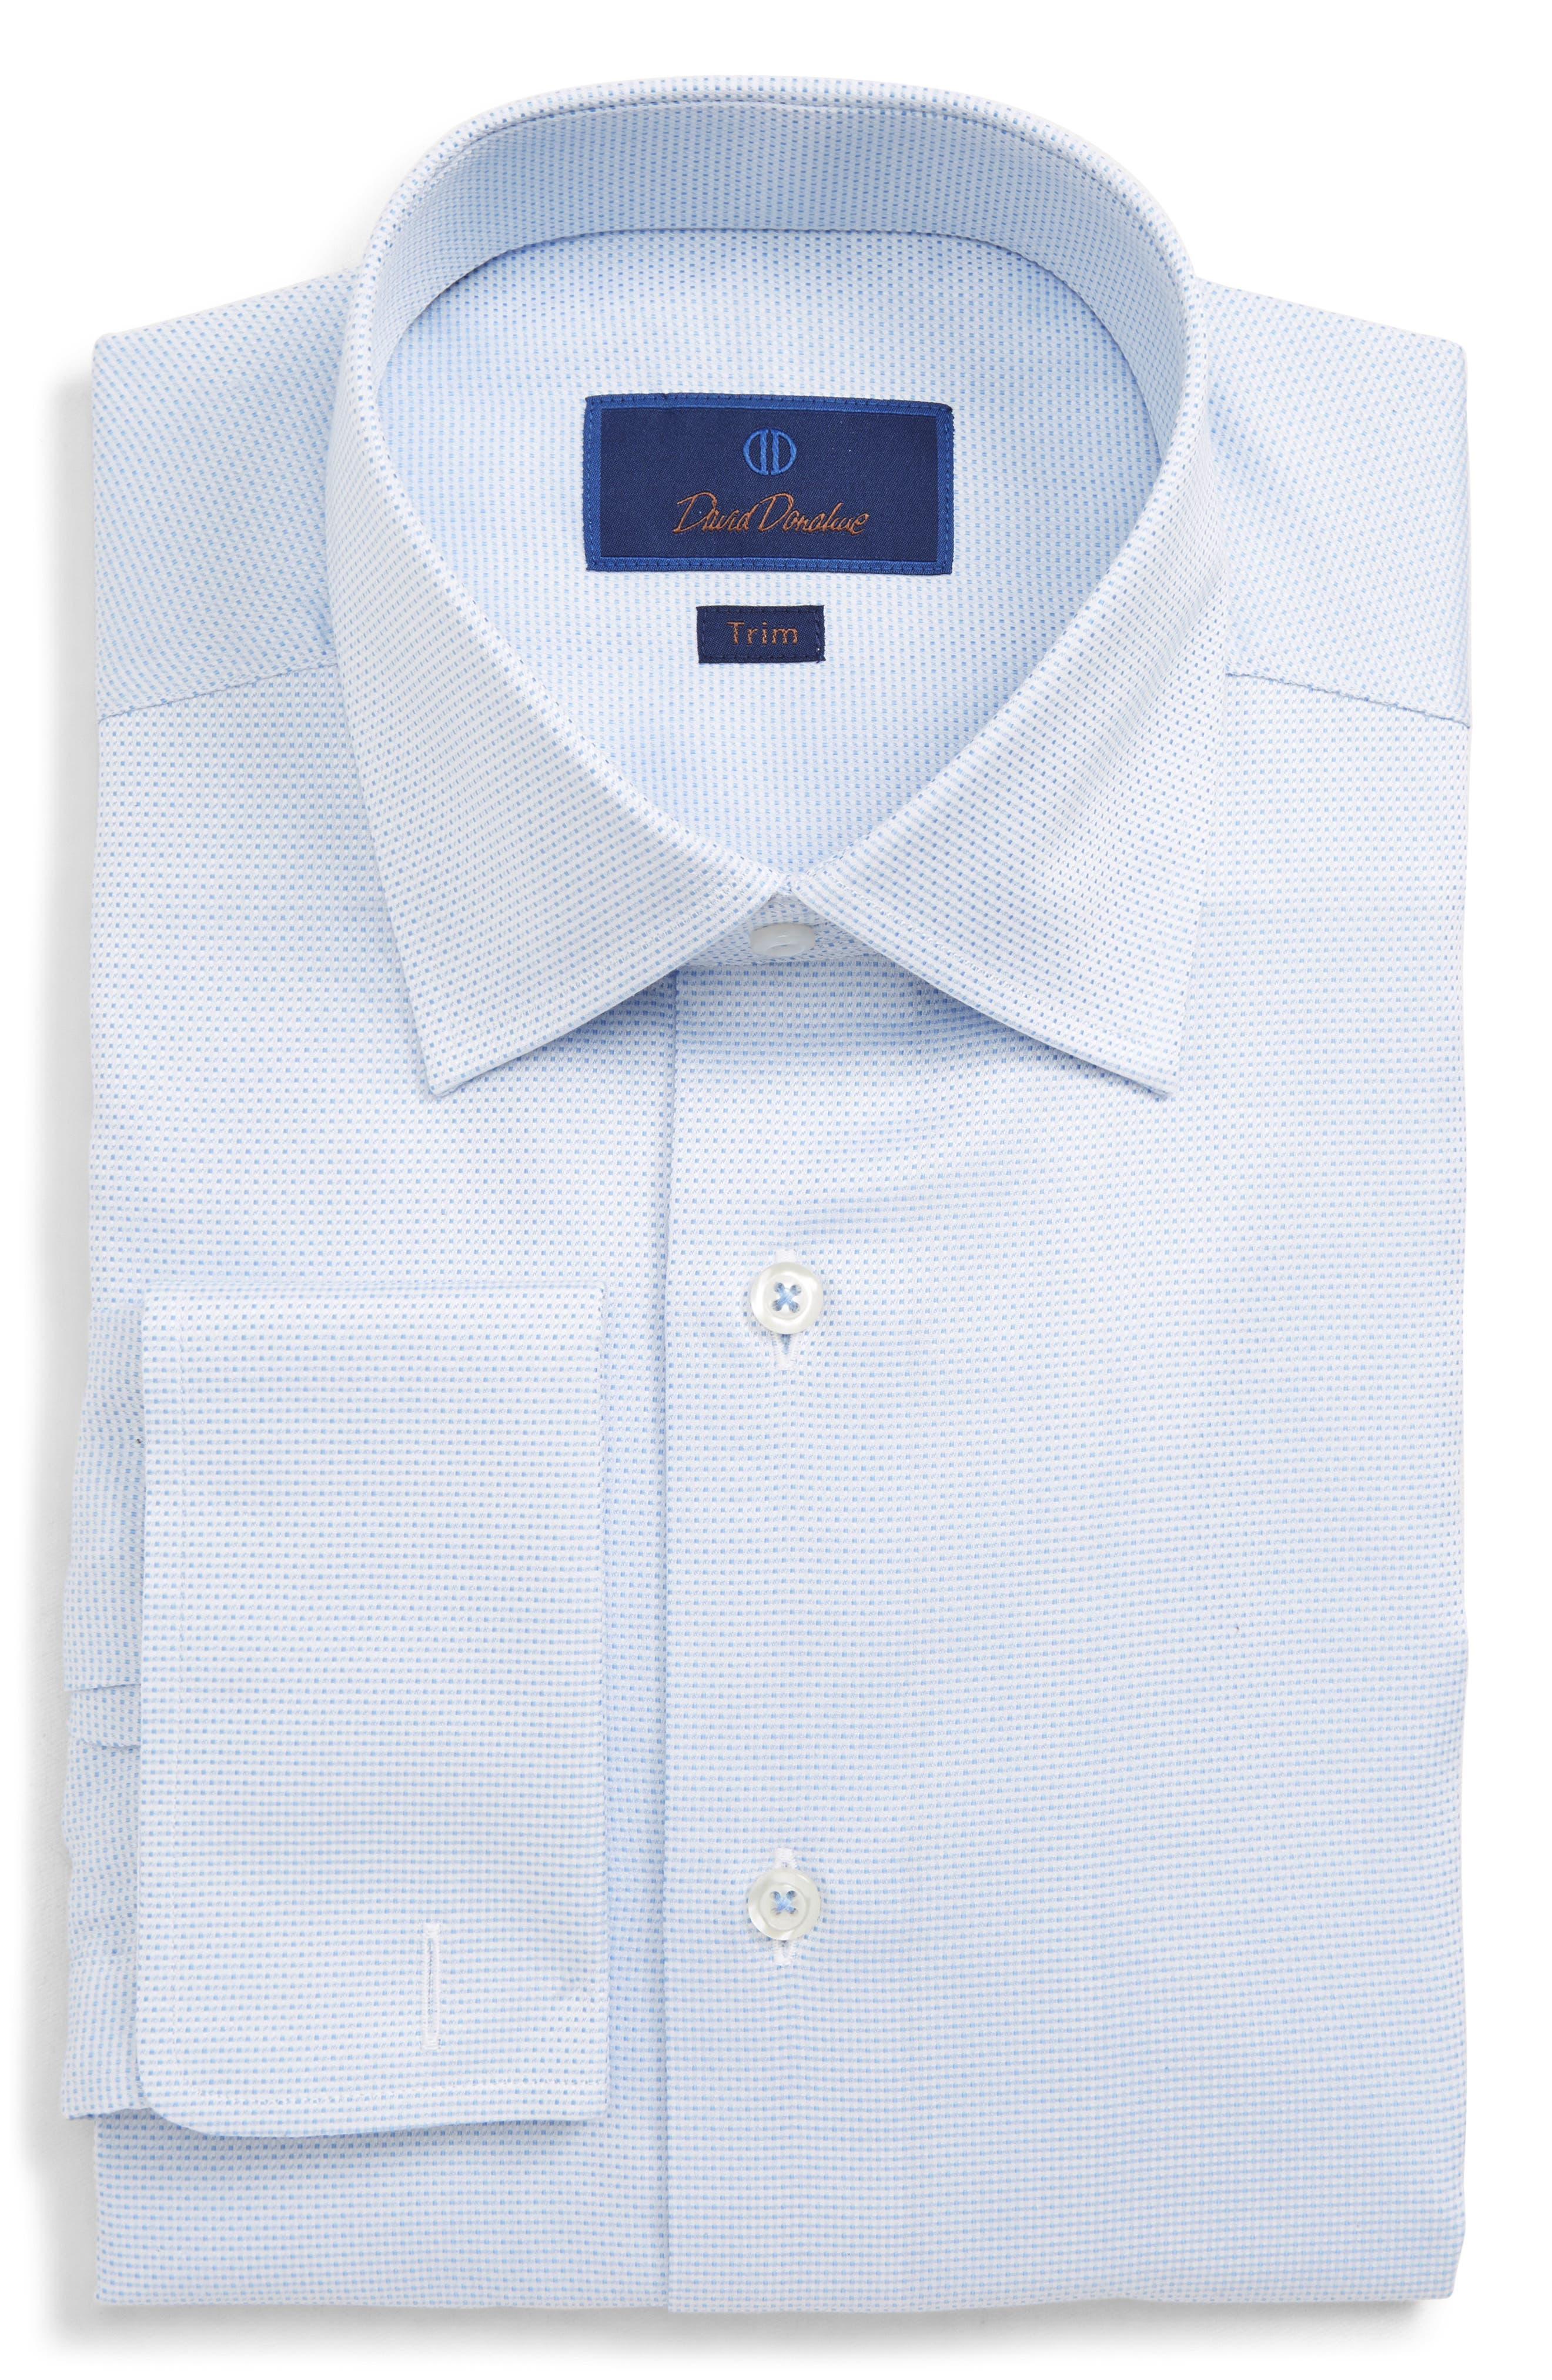 DAVID DONAHUE Men'S Trim-Fit Micro-Dobby Dress Shirt With French Cuffs in Sky